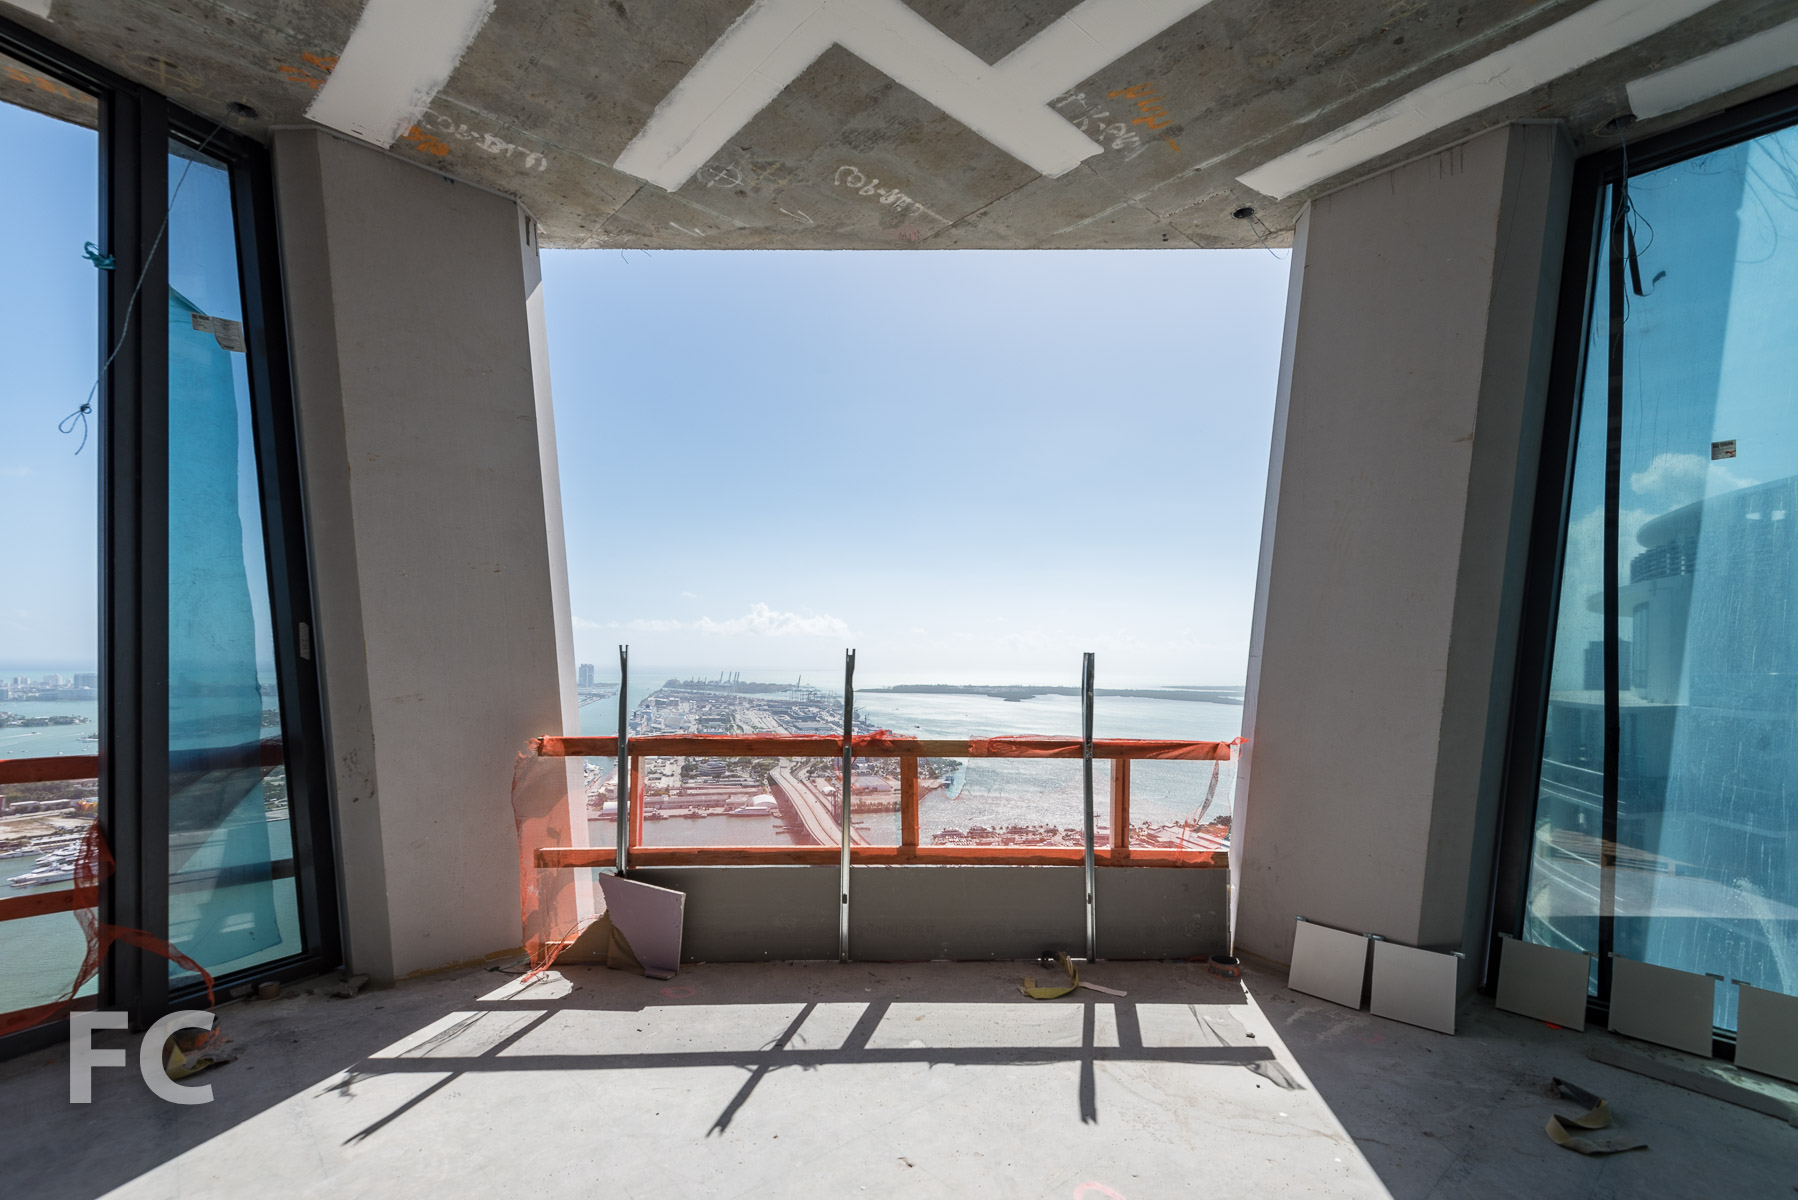 Southeast corner view from a penthouse interior.